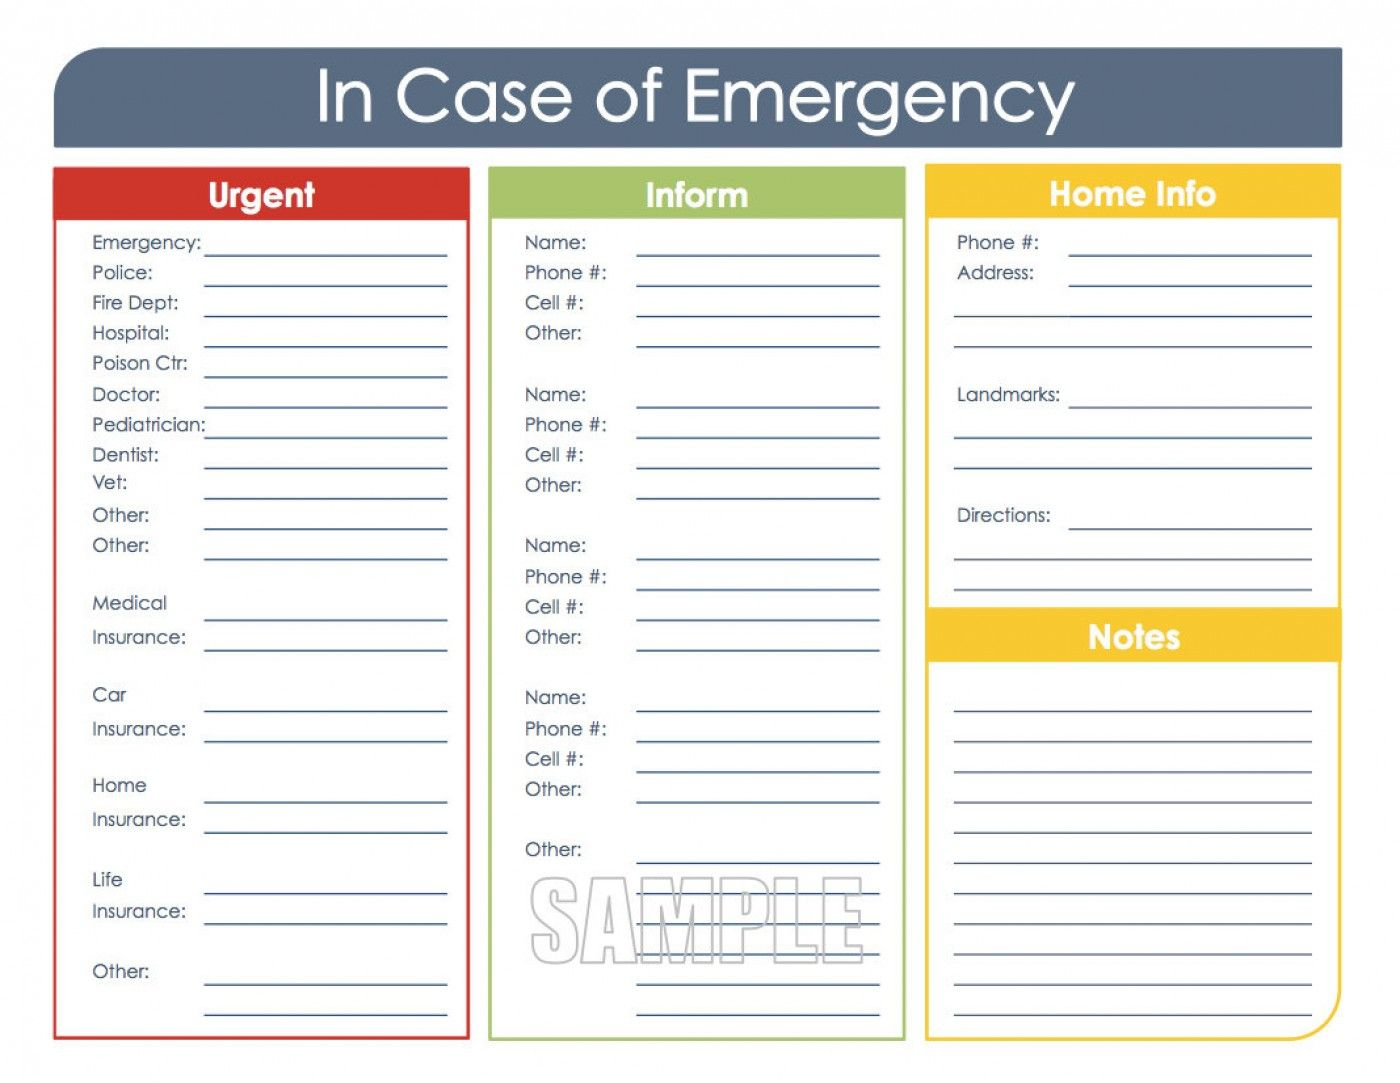 036 Emergency Contact Card Template Pertaining To In Case Of Emergency Card Template Fugozinsur Organization Printables In Case Of Emergency Emergency Binder